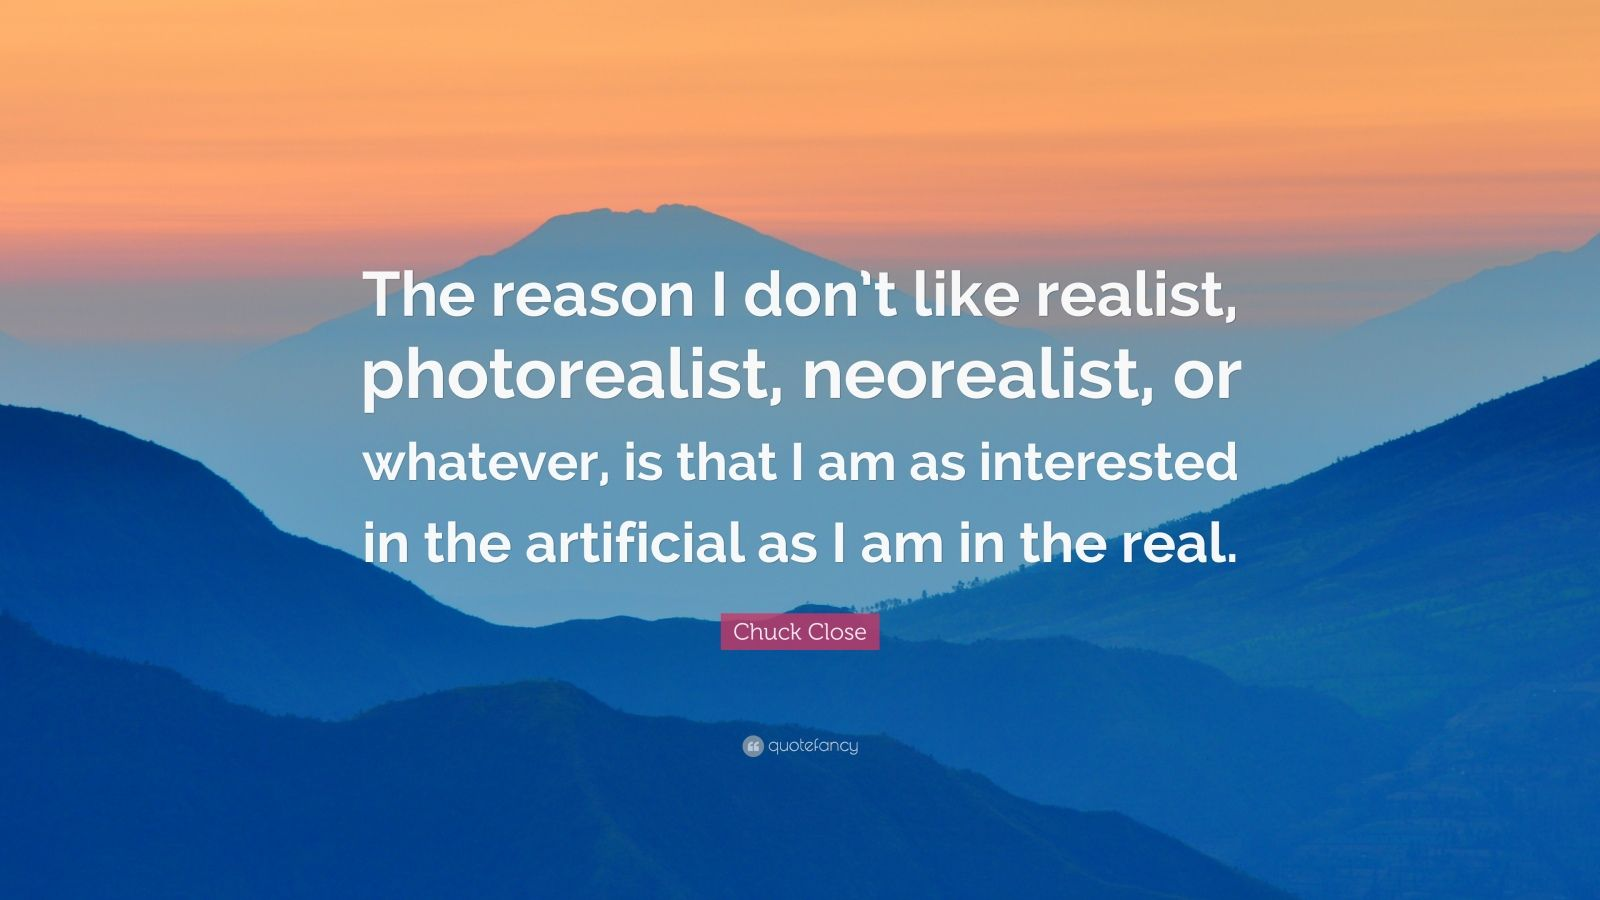 """Chuck Close Quote: """"The reason I don't like realist, photorealist, neorealist, or whatever, is that I am as interested in the artificial as I am in the real."""""""